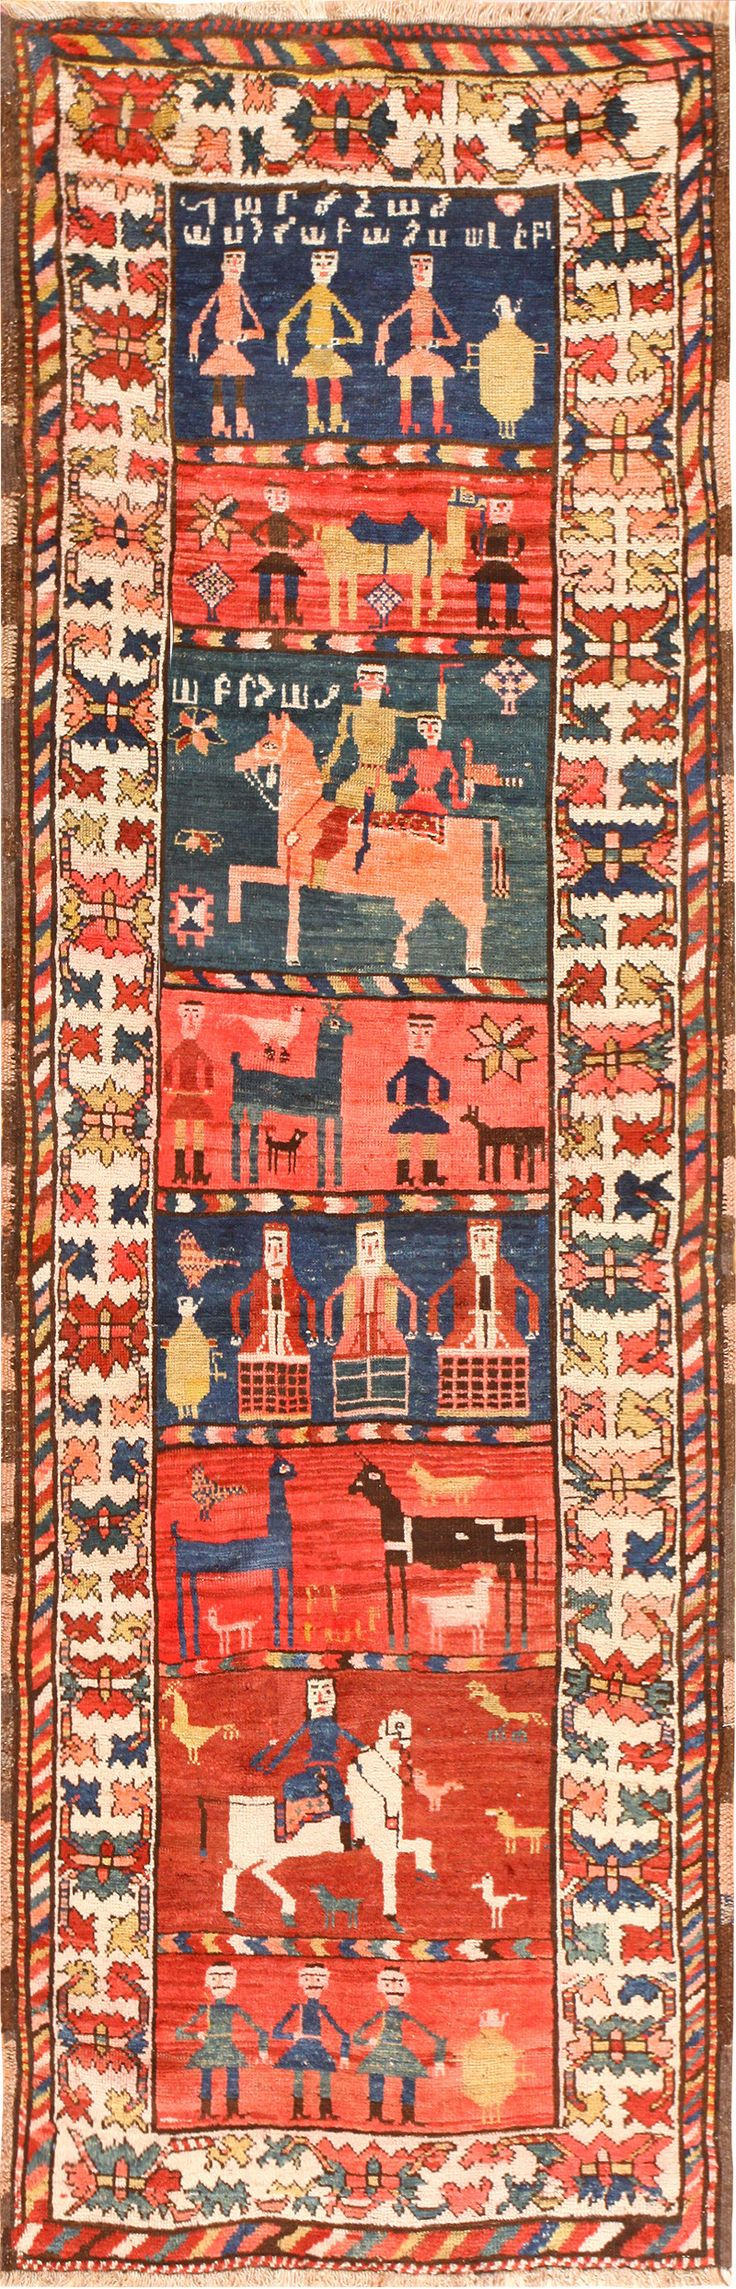 Brilliant Caucasian Karabagh runner, c. 1920. Excellent colours and I love the folk art scenes of daily life, never mind the floral border.